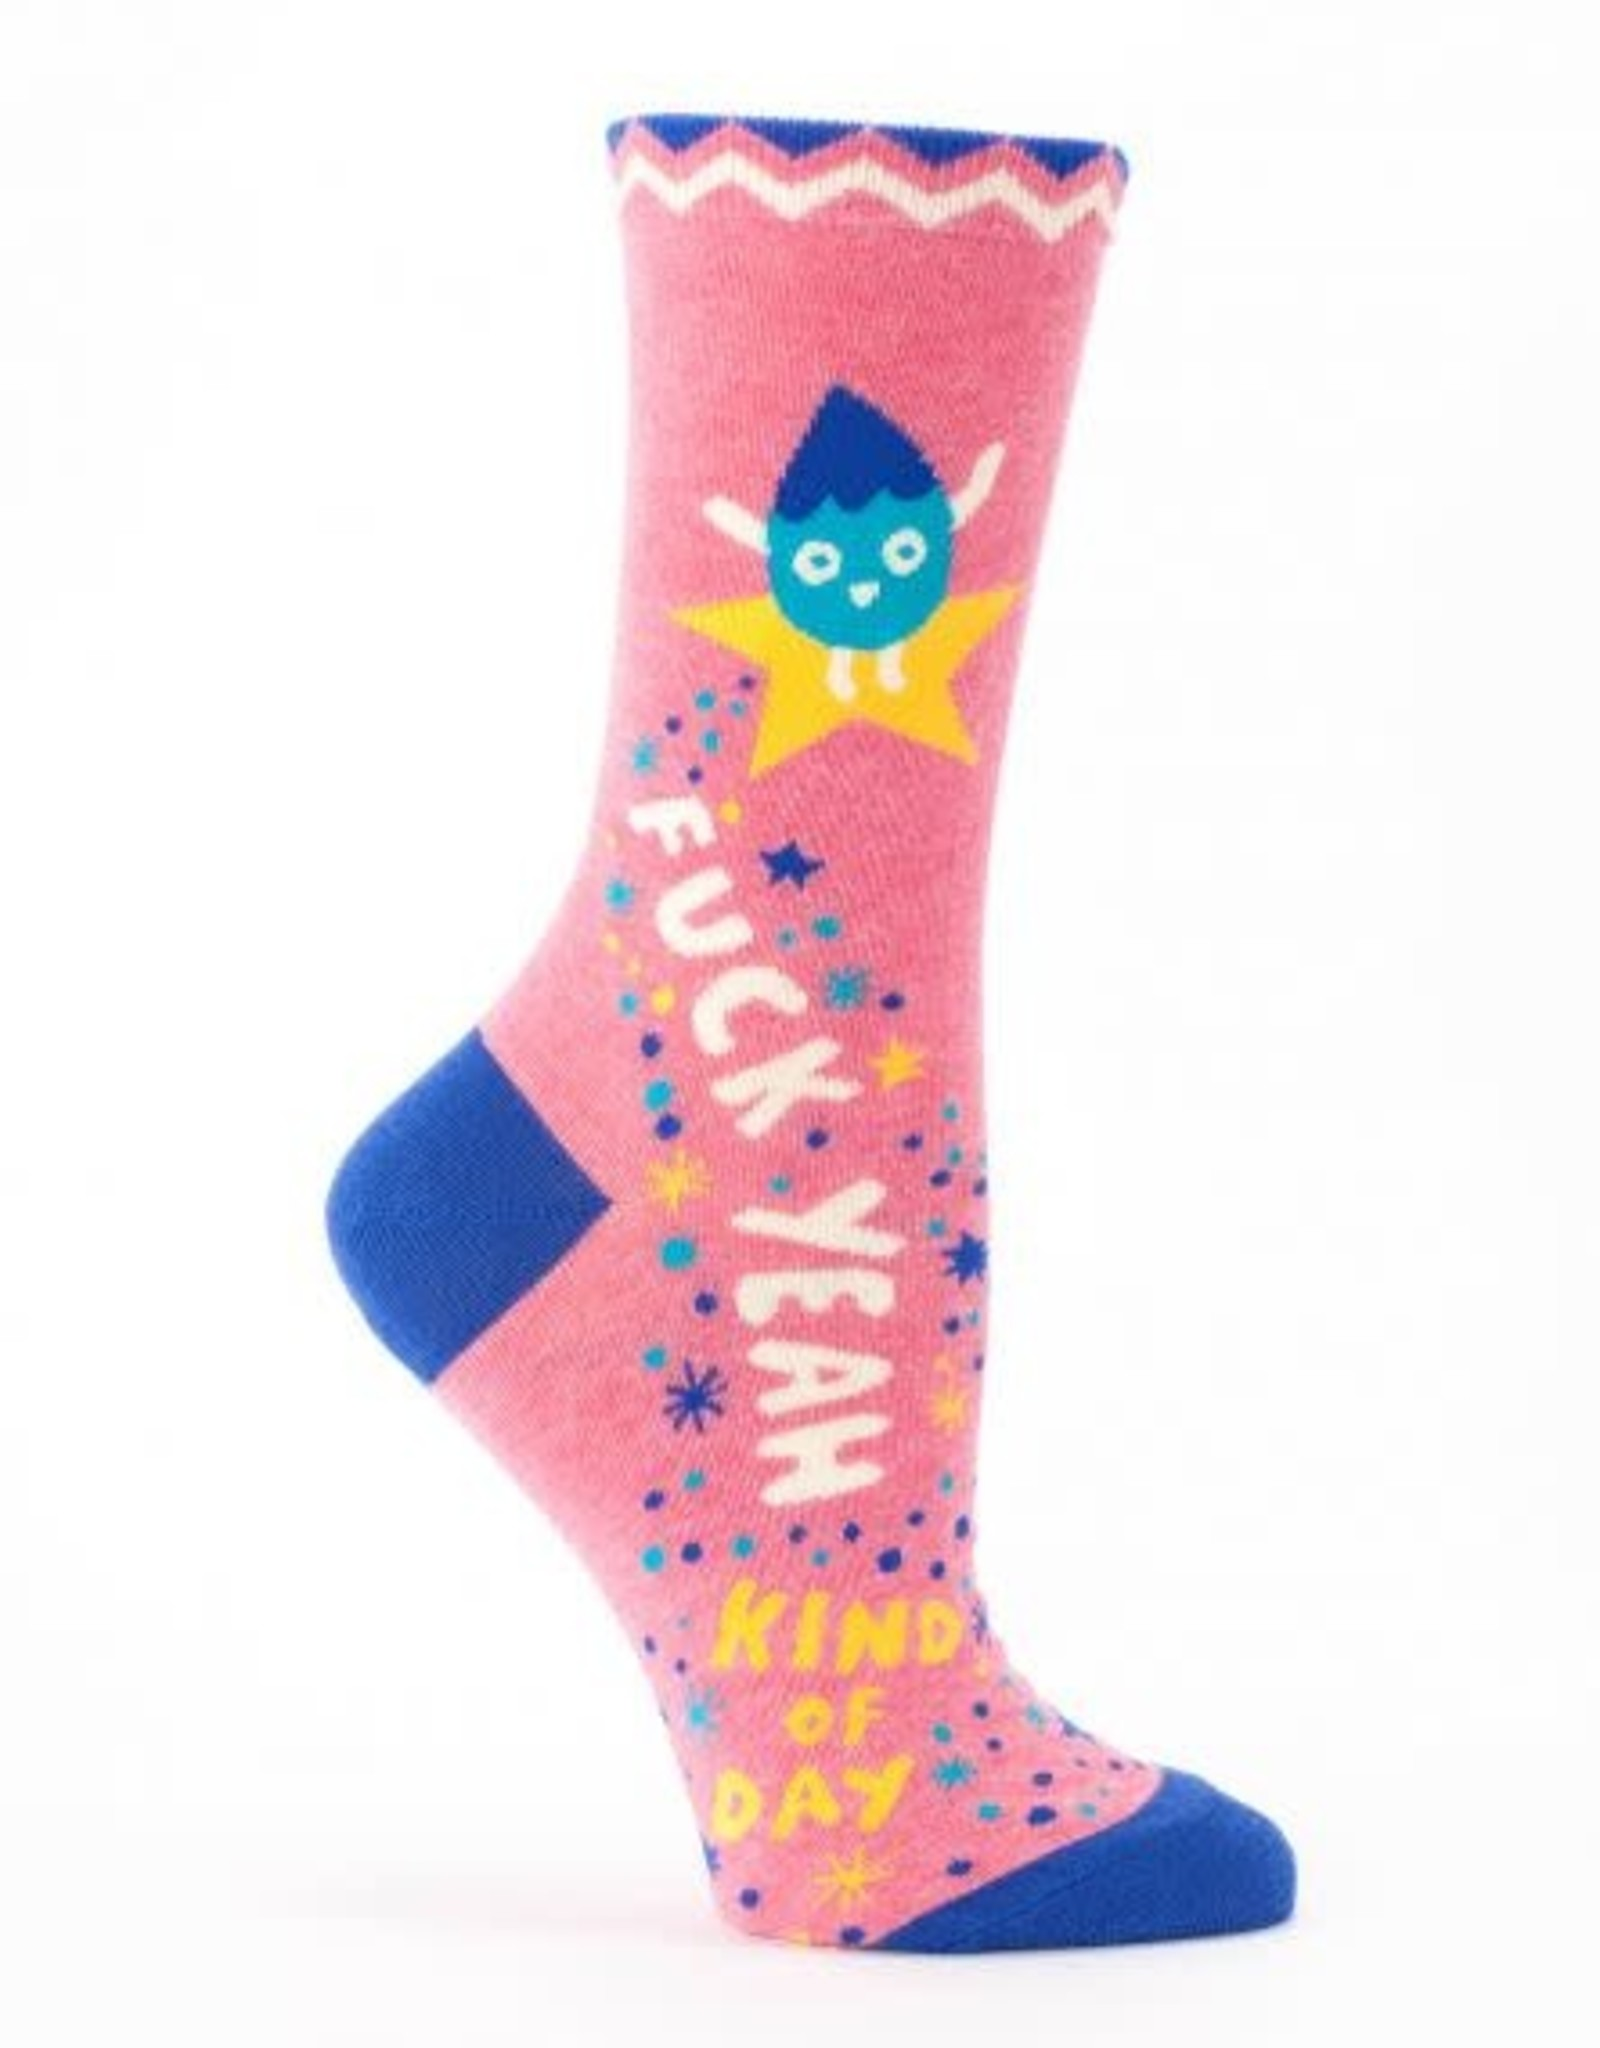 Blue Q Blue Q Adult Only Women's Crew Socks F-Yeah Day